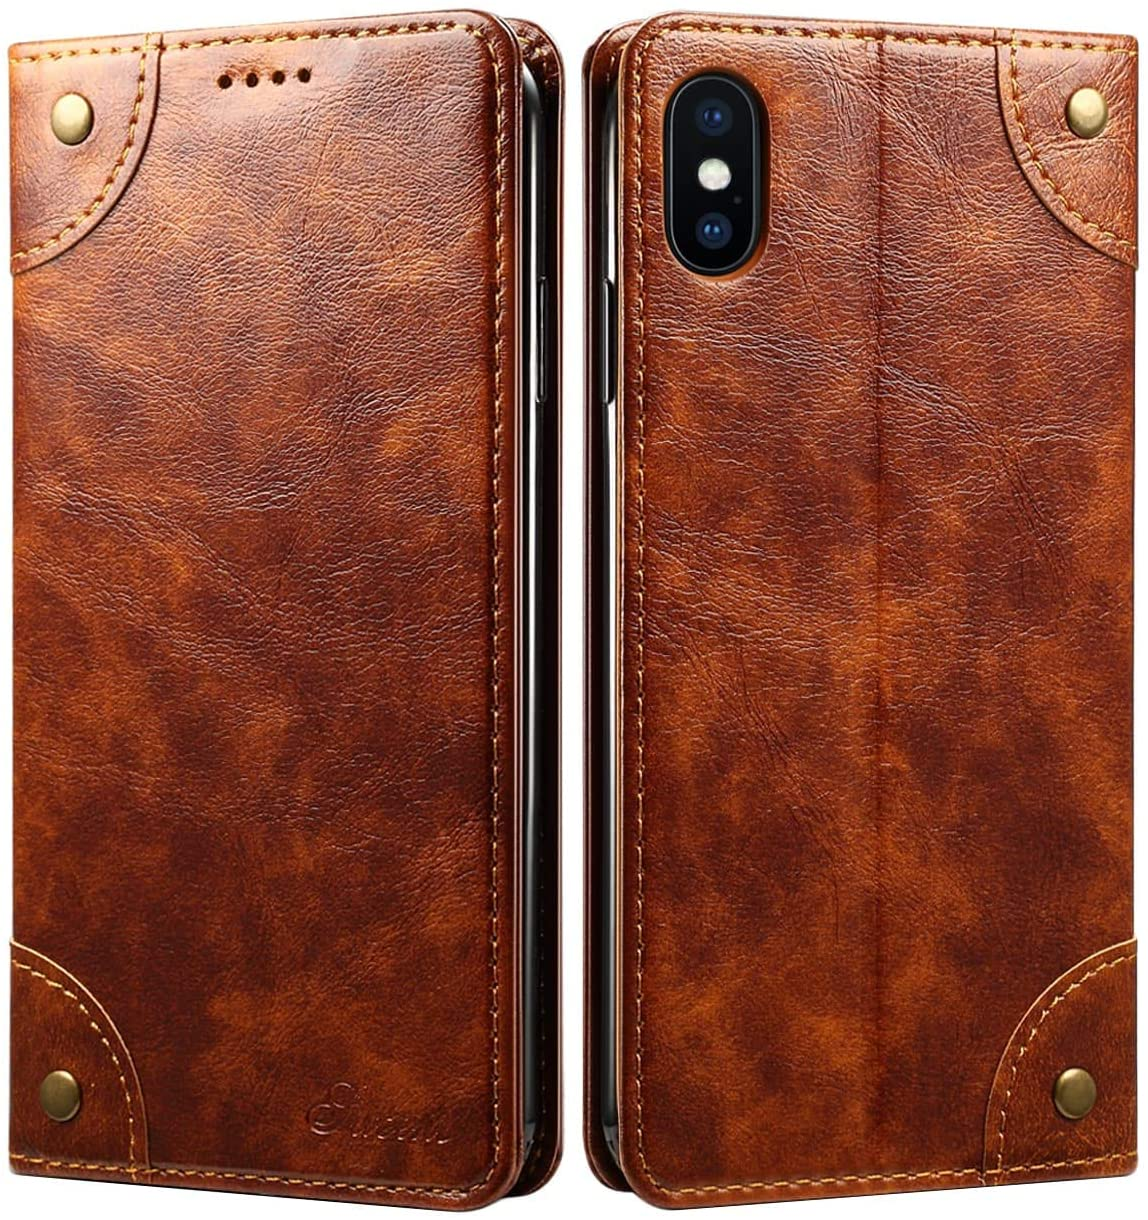 SINIANL iPhone 8 Case, iPhone 7 Case, Leather Wallet Folio Case Book Design Flip Cover with Stand and ID Credit Card Slot Magnetic Closure for iPhone 8/7